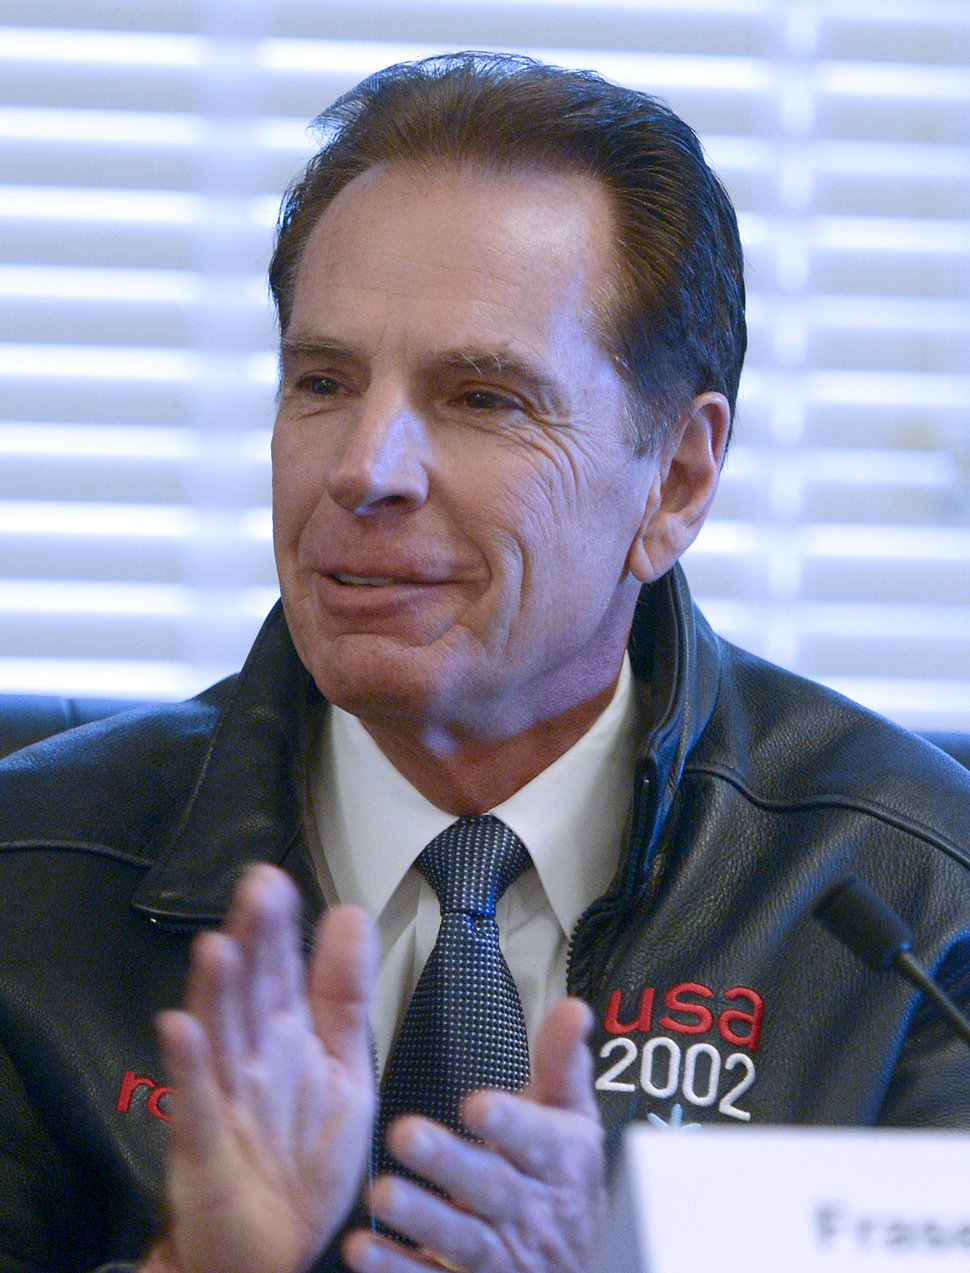 (Leah Hogsten | The Salt Lake Tribune) Olympic/Paralympic Exploratory Committee Board member Fraser Bullock and fellow members of the Salt Lake Olympic Exploratory Committee voted Wednesday to recommend that Utah should pursue hosting the Olympic and Paralympic Winter Games in 2030. If the U.S. Olympic Committee decides by March 31 to pursue the Games for 2026, and selects Salt Lake City as an interested city, the committee recommended that Utah leaders consider taking the next steps, including forming a candidature committee to pursue the opportunity, Wednesday, February 7, 2018.